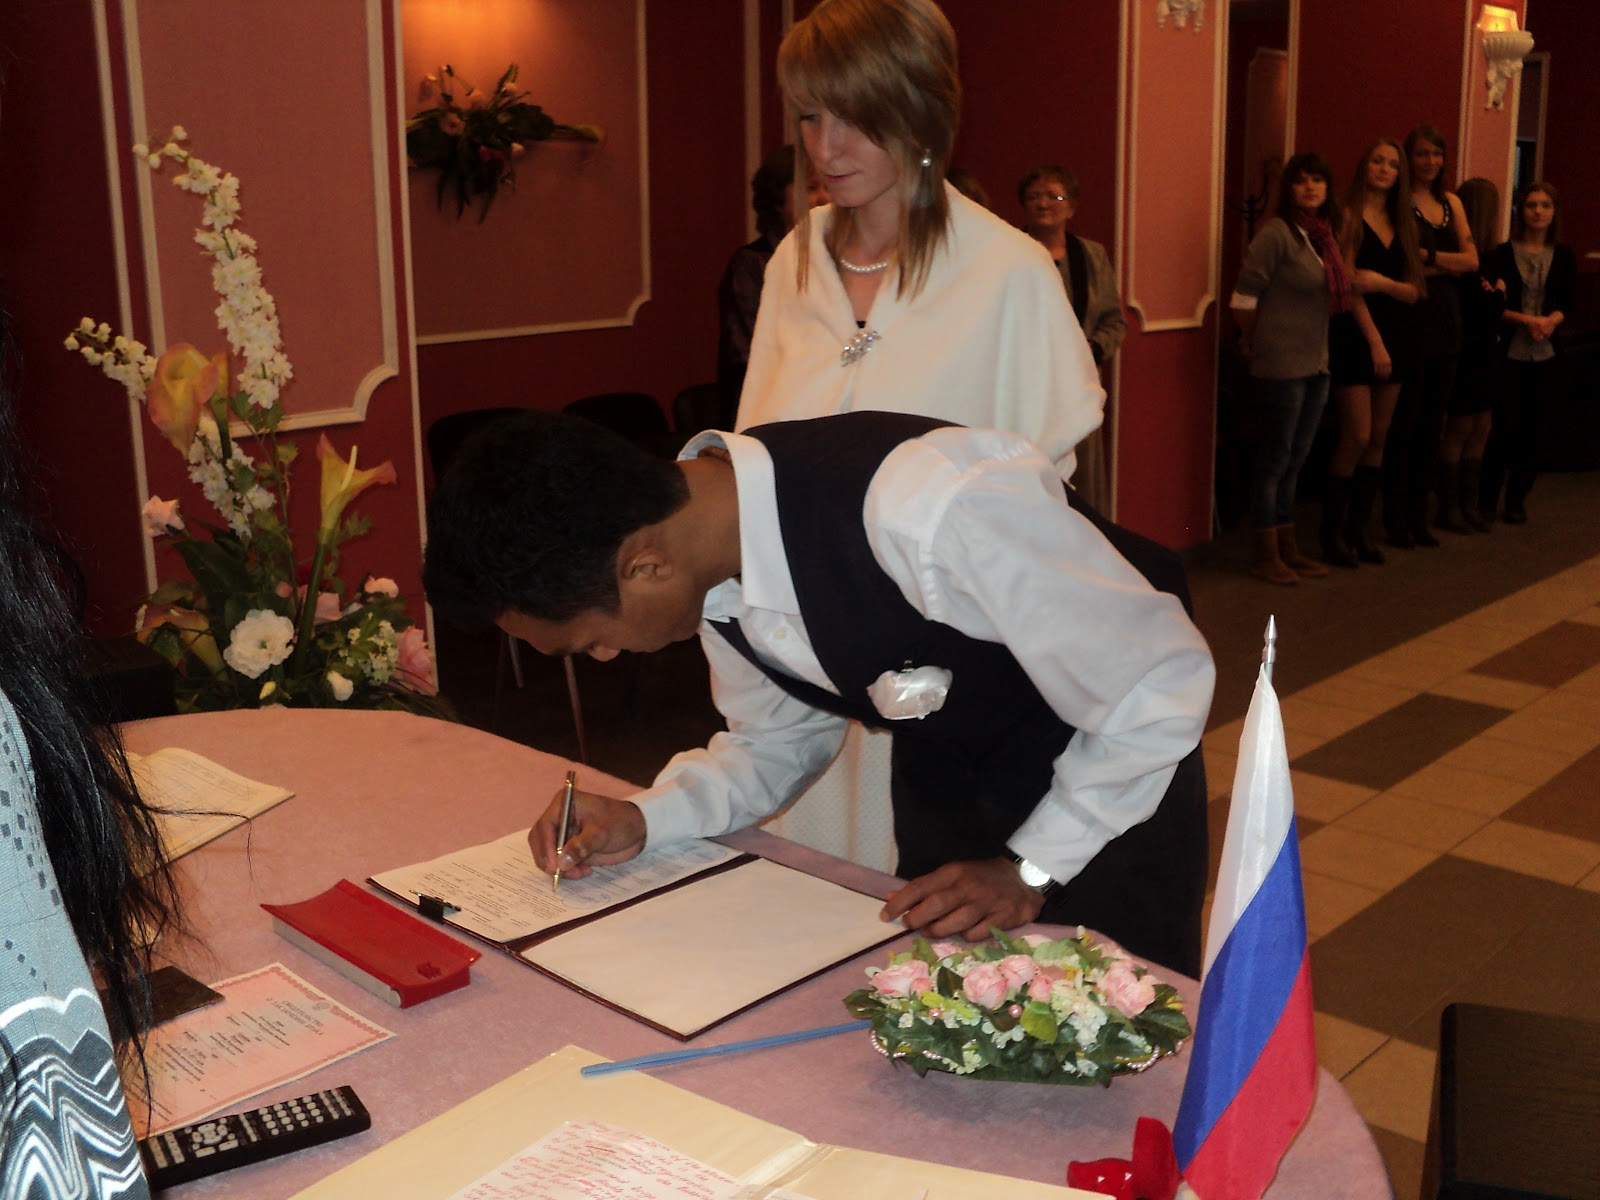 KnowledgExperience: RUSSIAN WEDDING